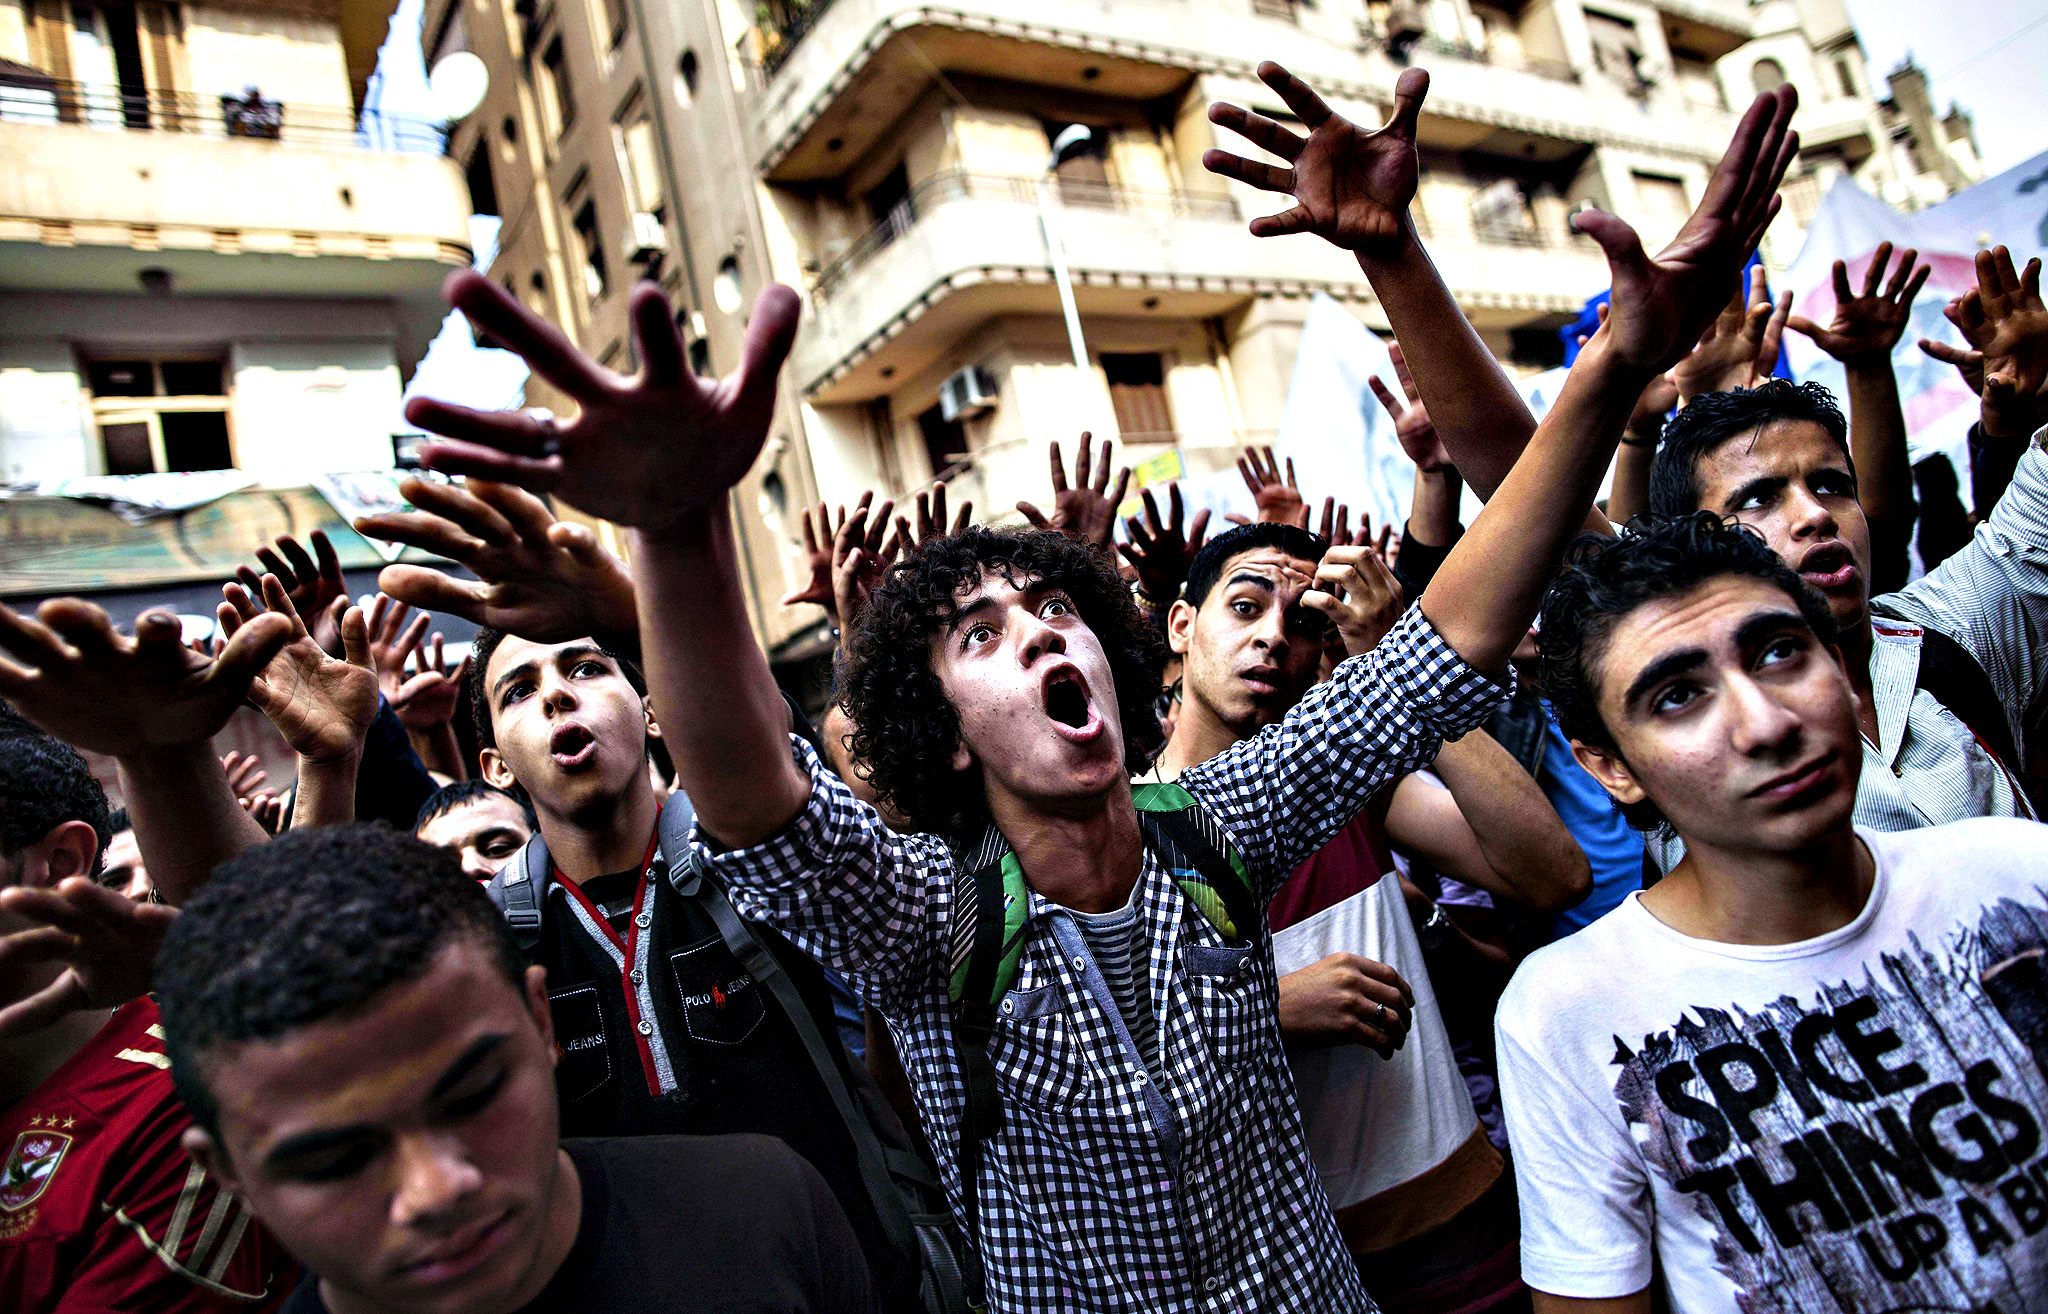 Egyptians shout slogans as they gather in Mohammed Mahmud street to mark the anniversary of anti-military protests on November 19, 2013 in Cairo. Dozens of supporters and opponents of the army gathered in Tahrir to mark the anniversary of anti-military protests, amid mounting anger over a memorial to those killed in Egypt's uprising.